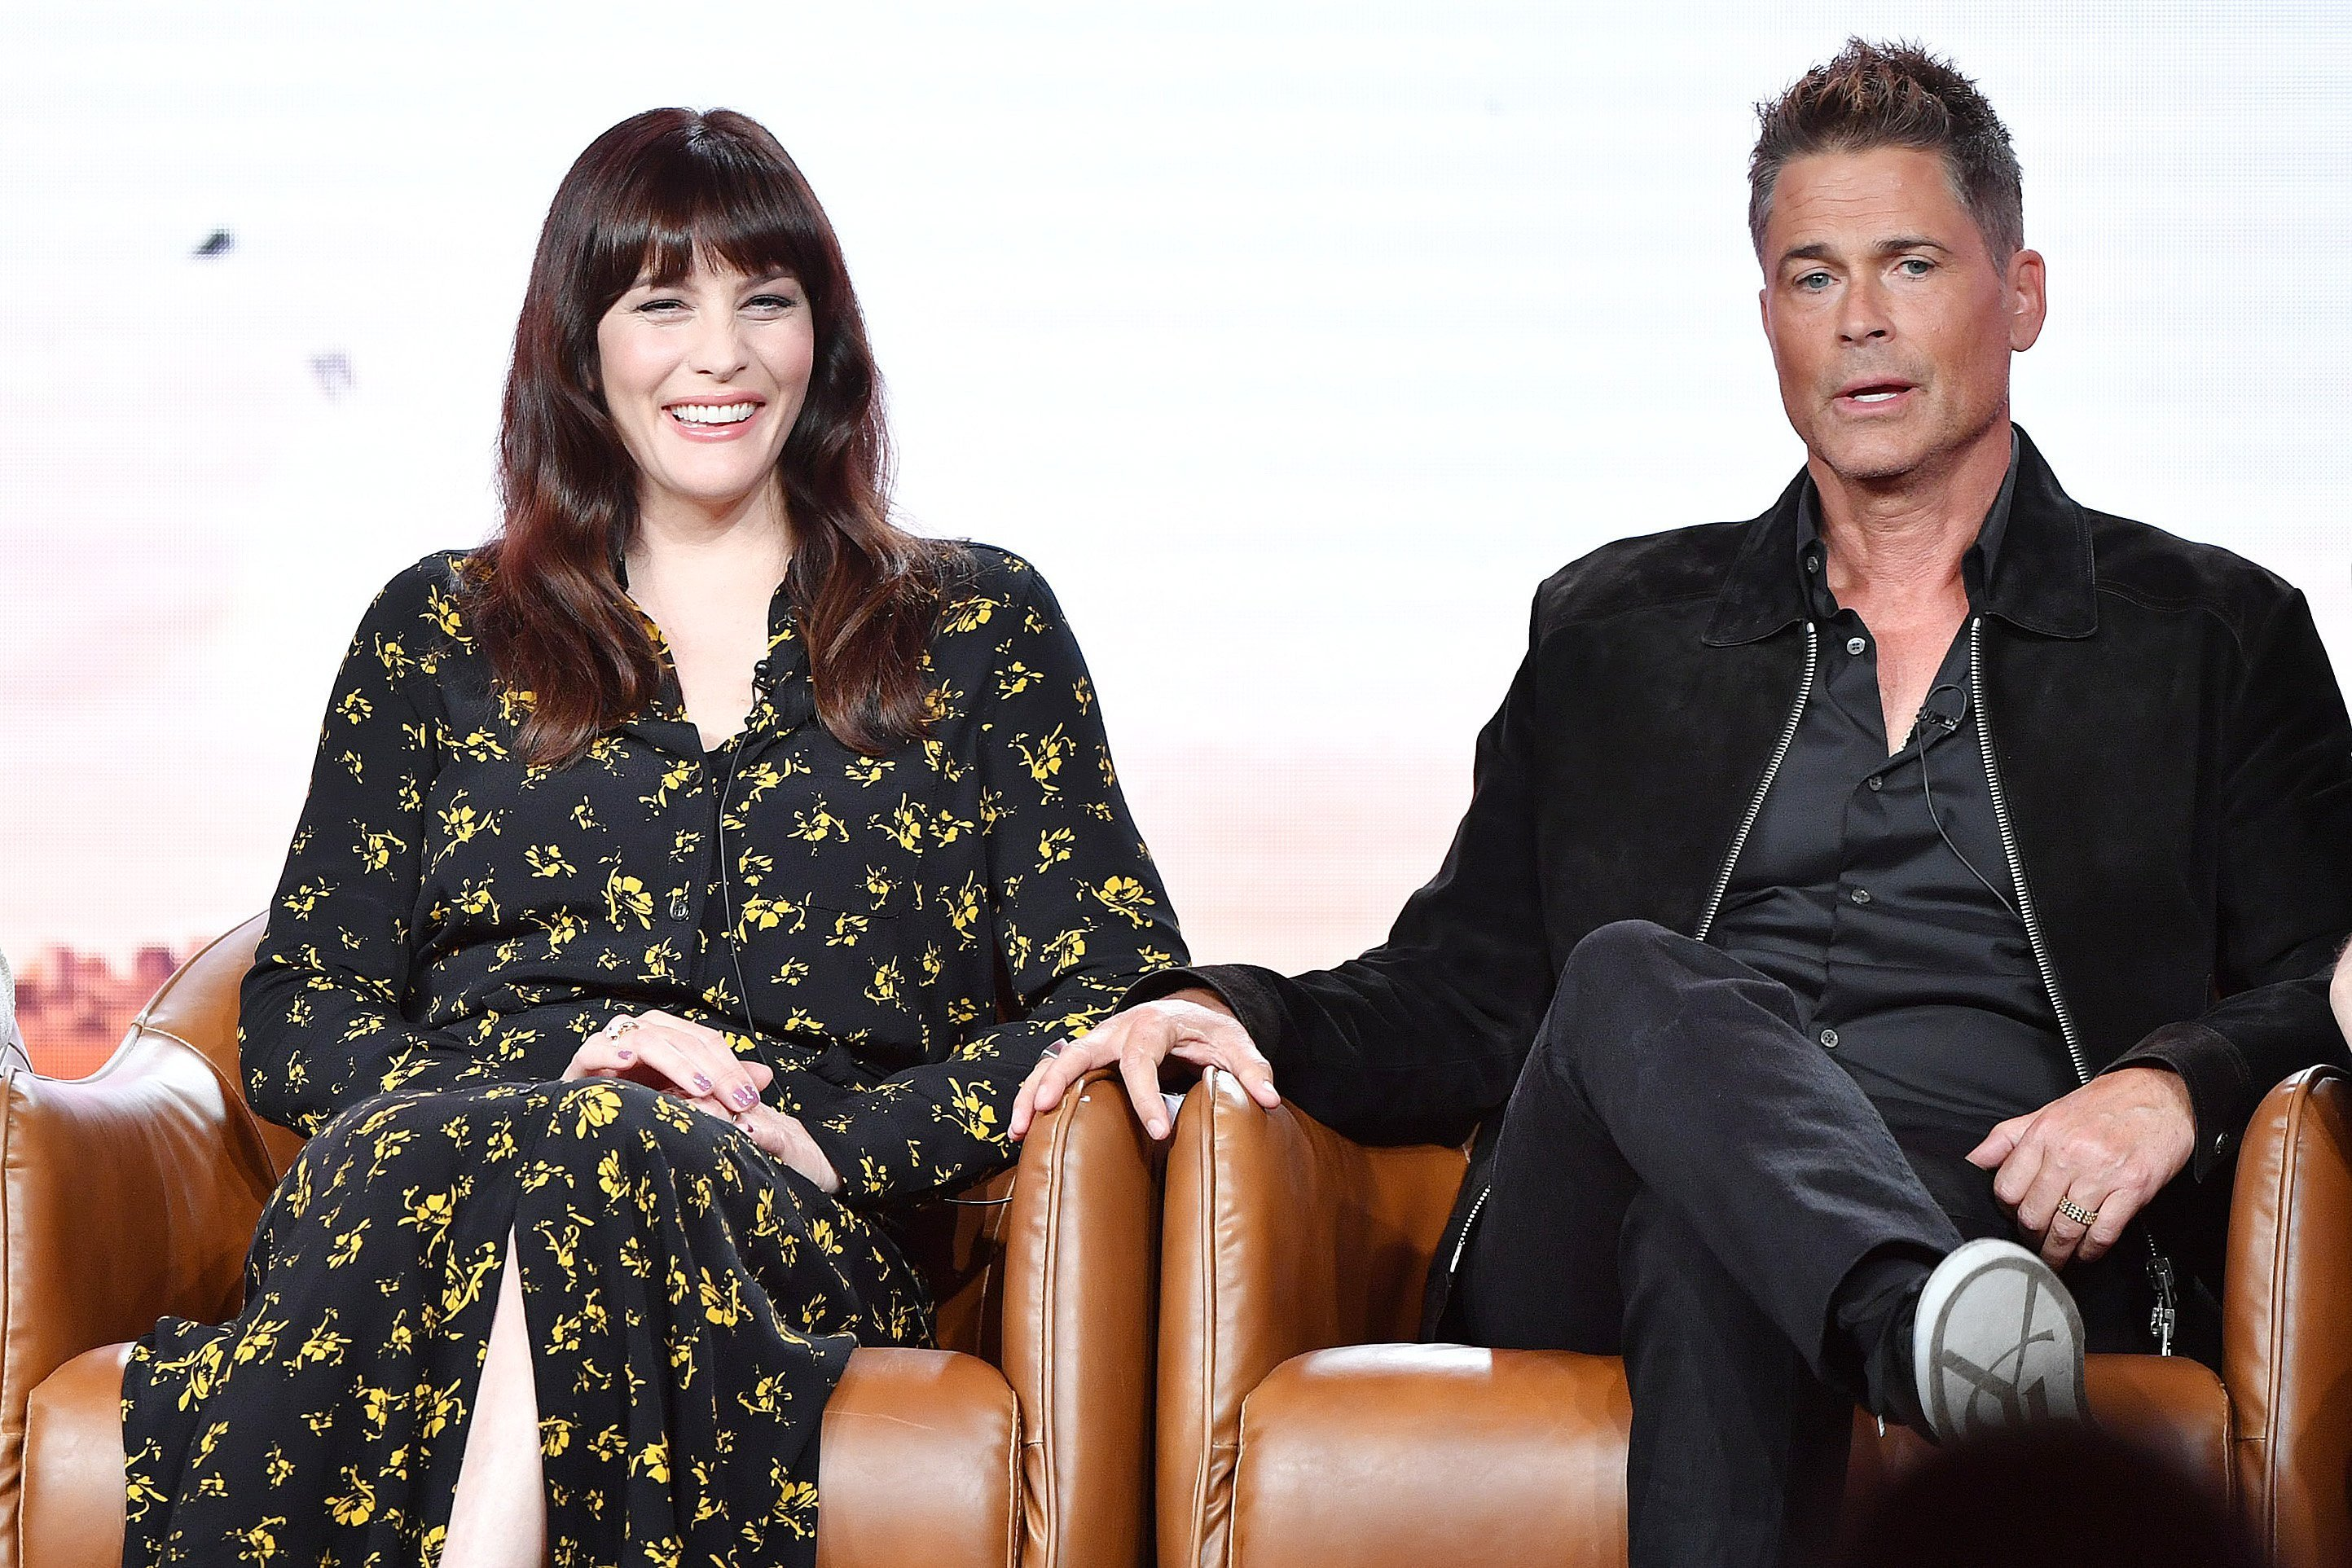 Liv Tyler and Rob Lowe  speak during the 2020 Winter TCA Press Tour at The Langham Huntington, Pasadena on January 07, 2020, in Pasadena, California. | Source: Getty Images.